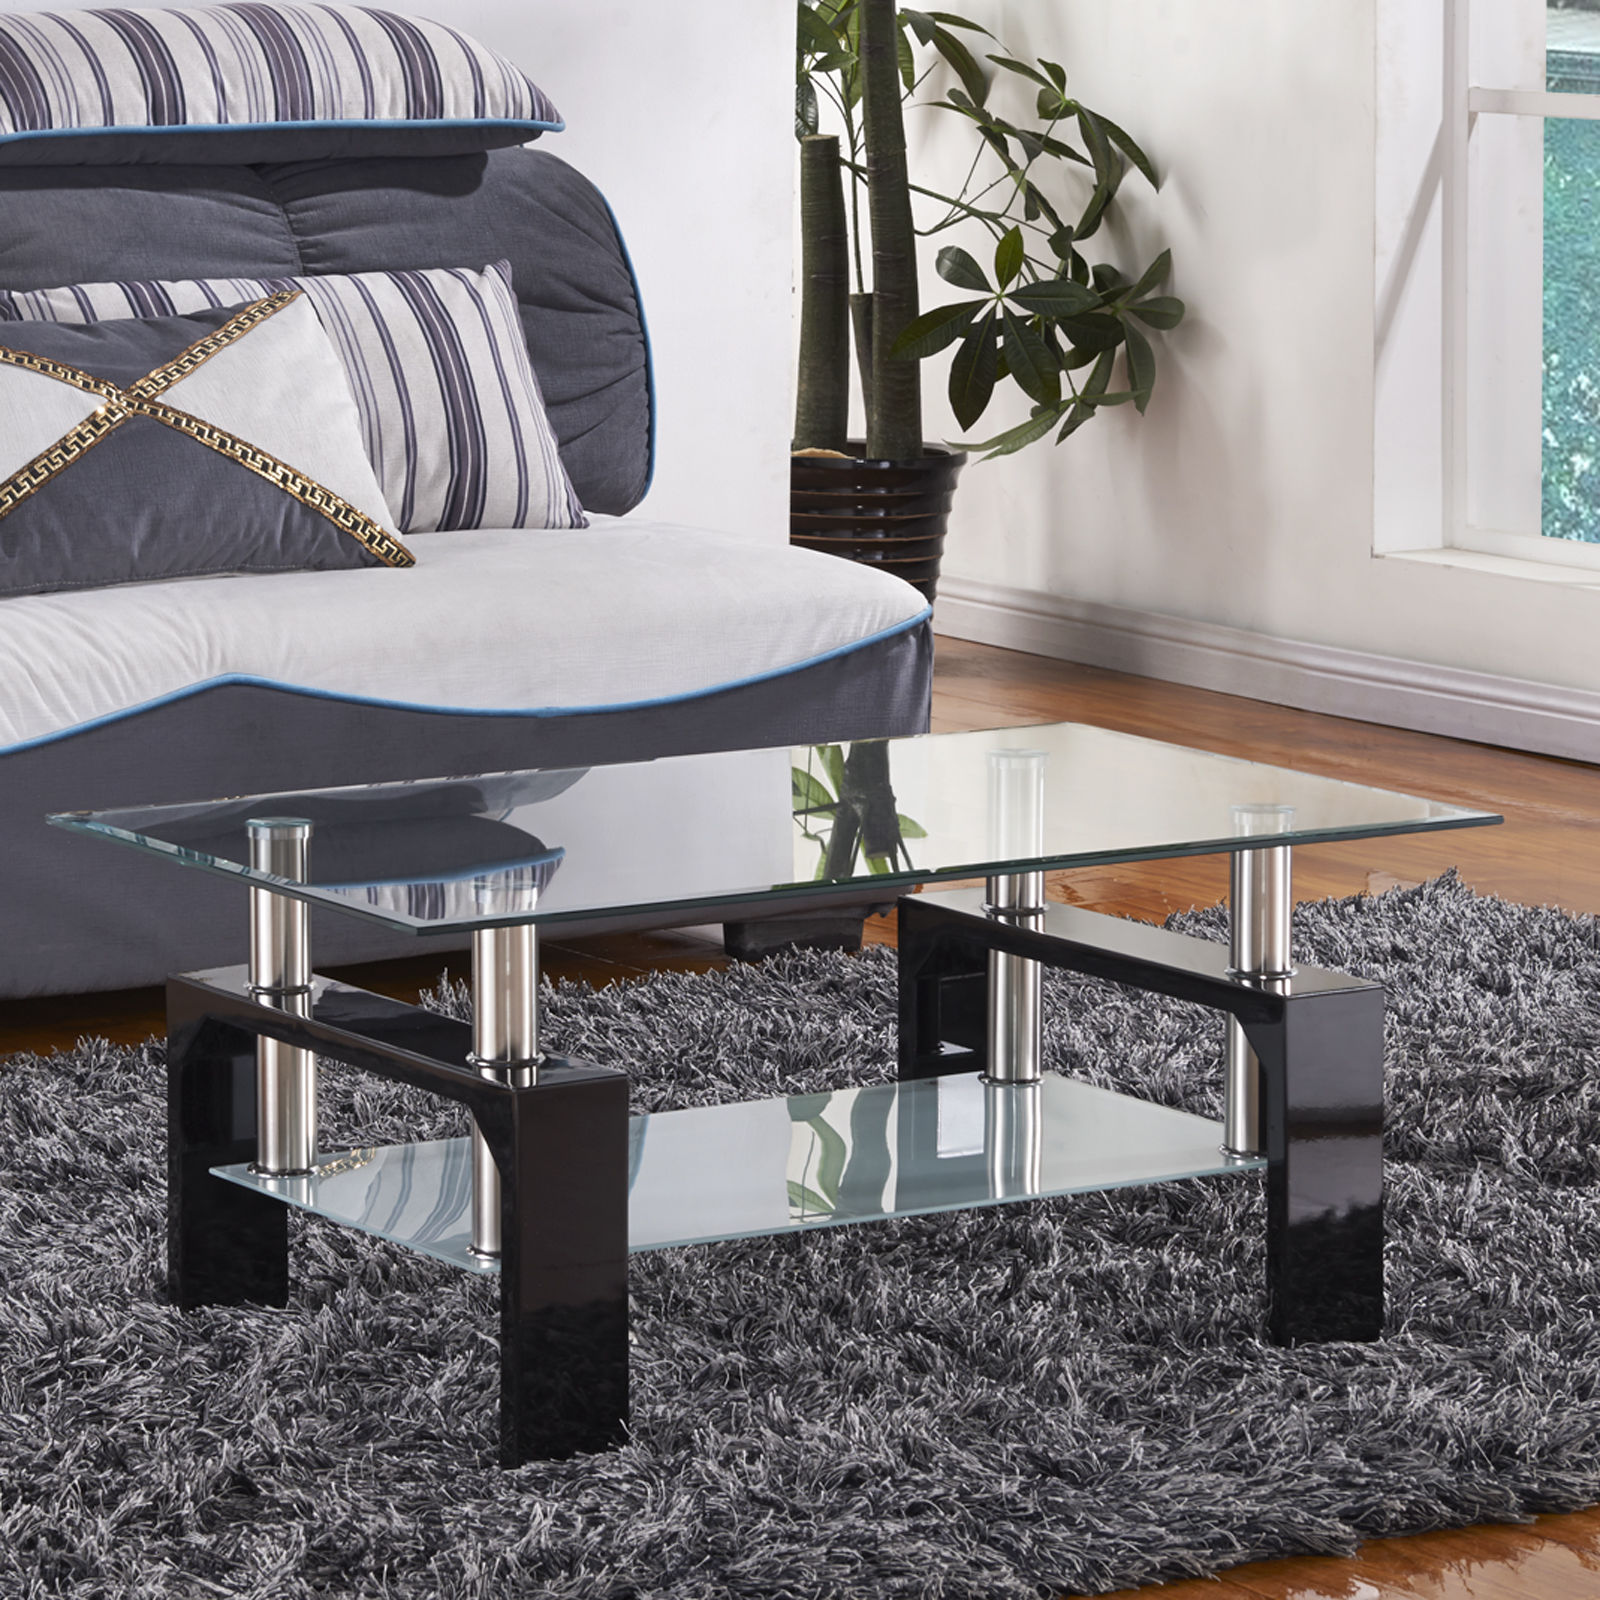 Design Glass Top Black Legs Coffee Table Rectangular